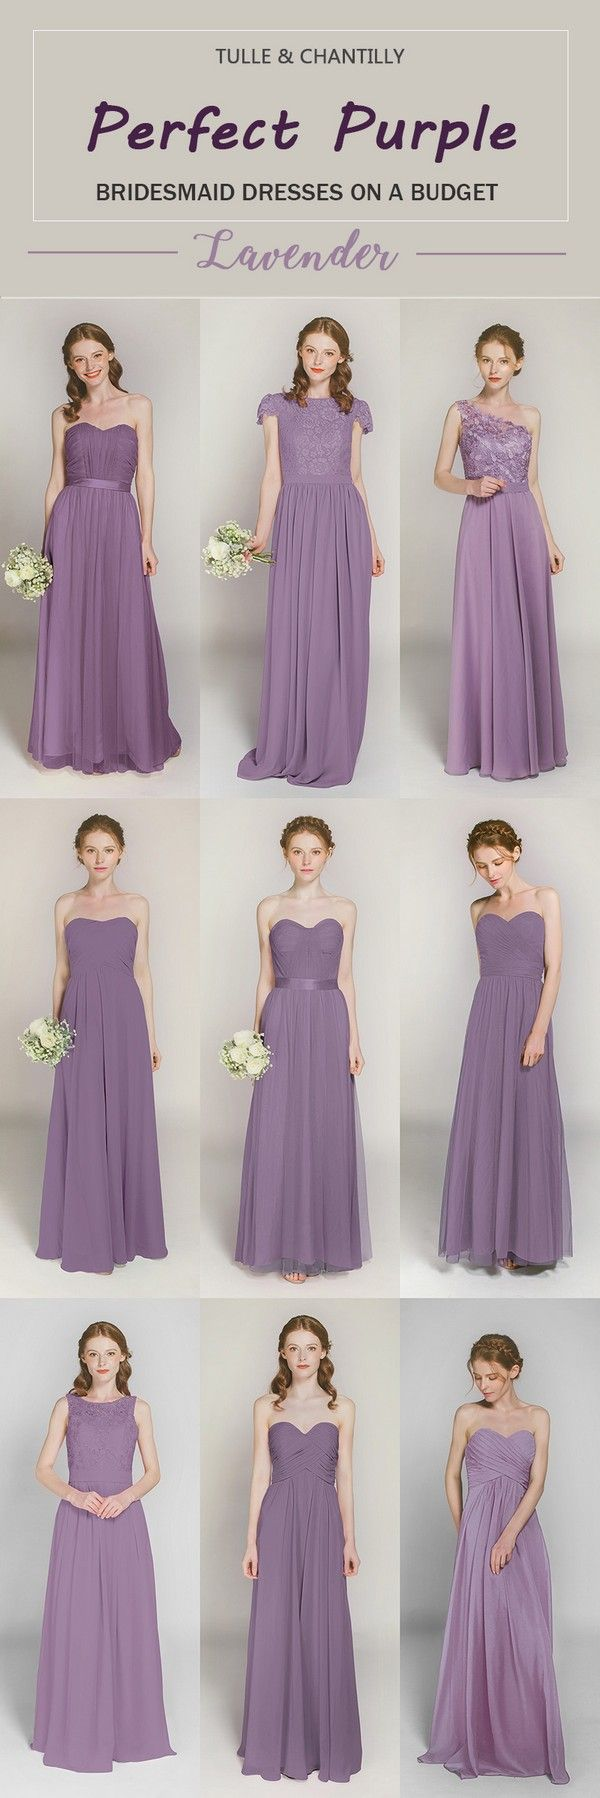 lavender bridesmaid dresses with other 40+ colorstul